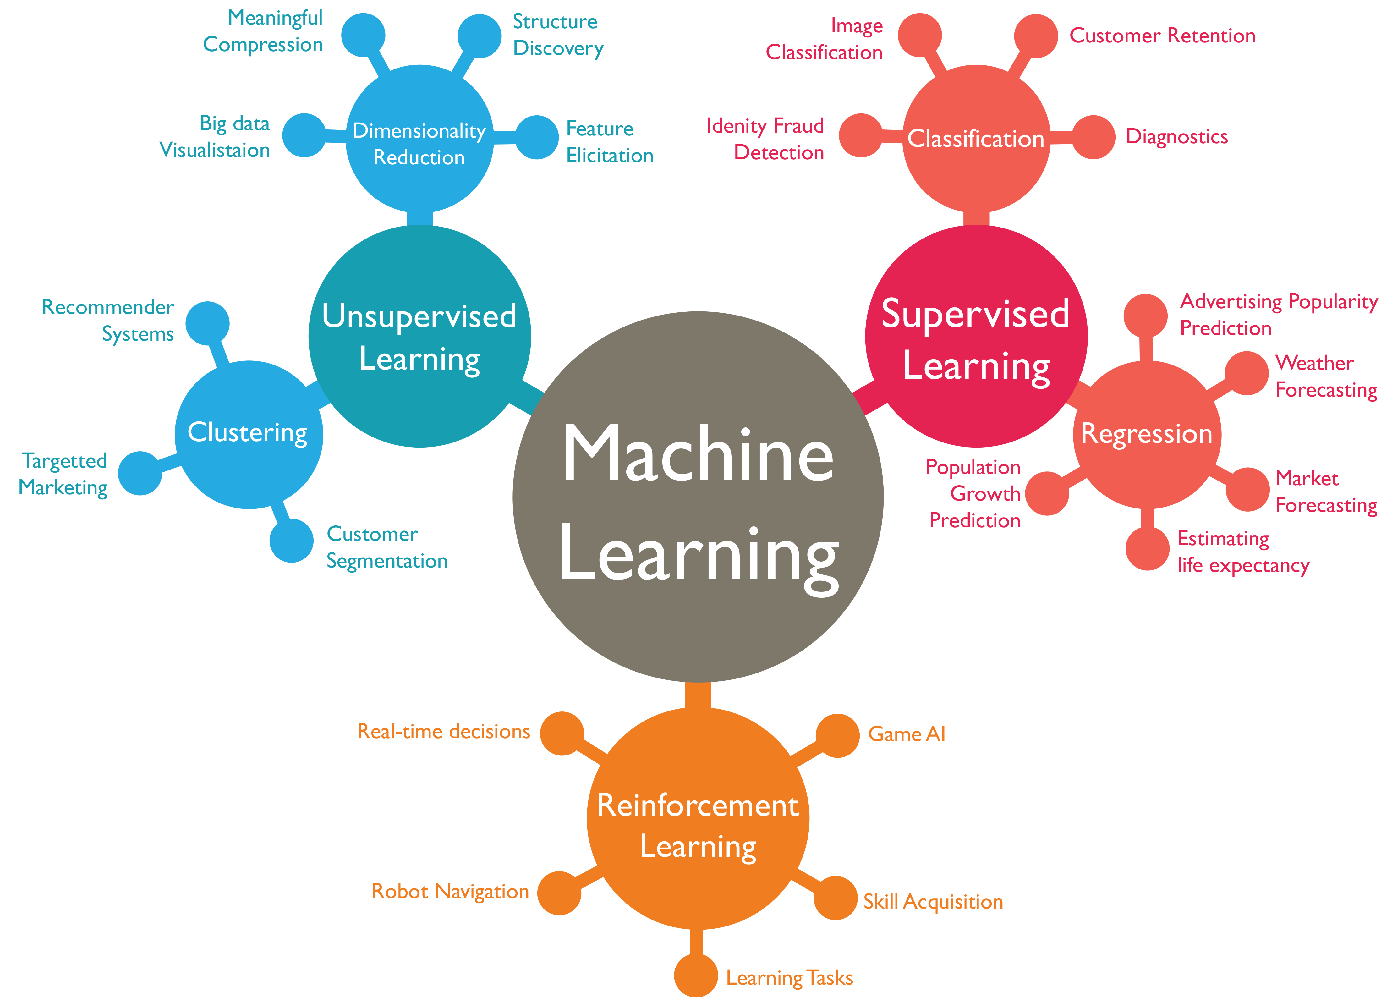 machine-learning-roadmap-2019/README md at master · libracoder